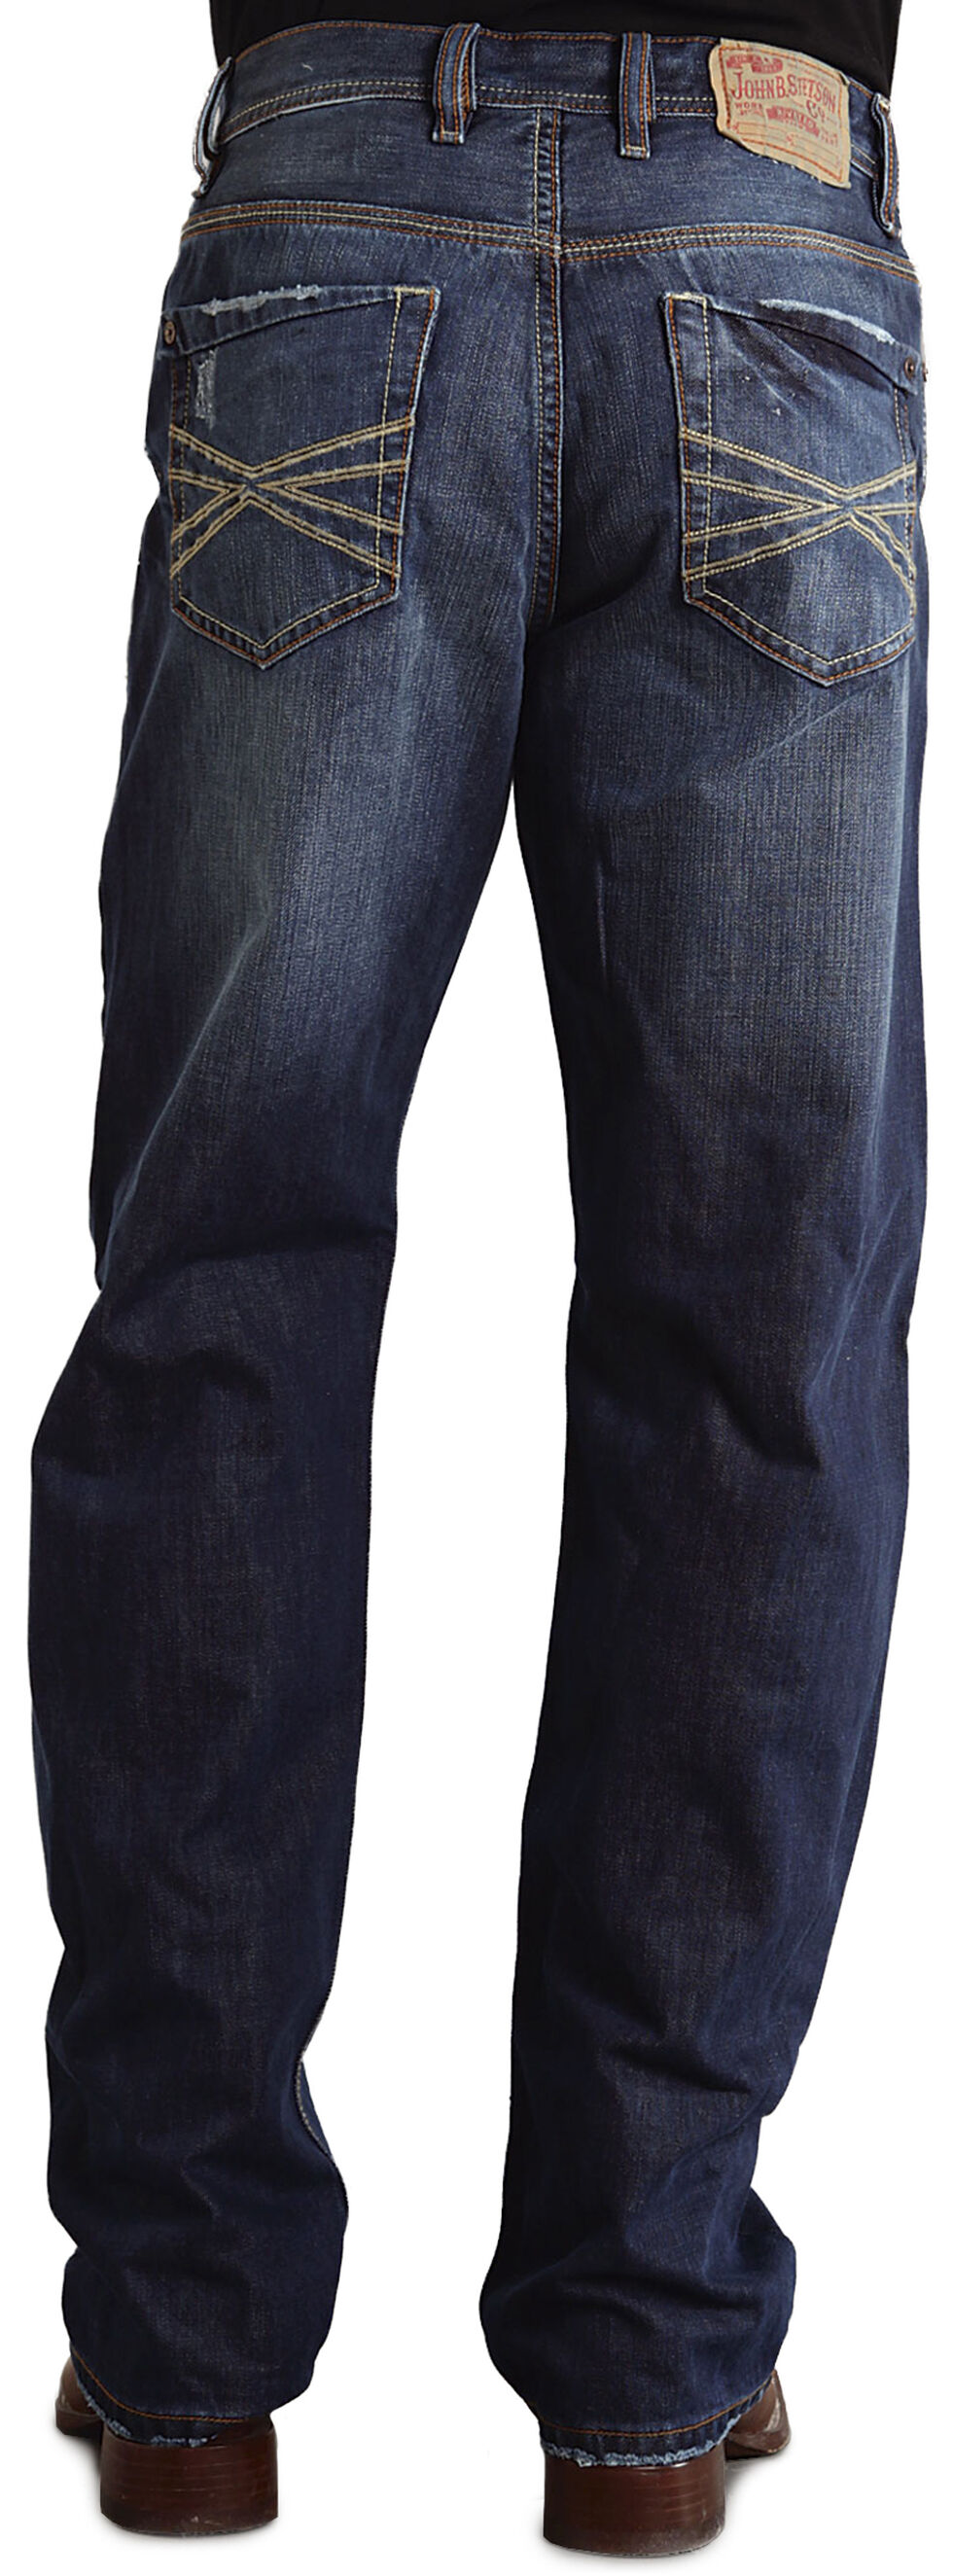 """Stetson 1520 Fit Contrasting """"X"""" Stitched Jeans, Dark Stone, hi-res"""